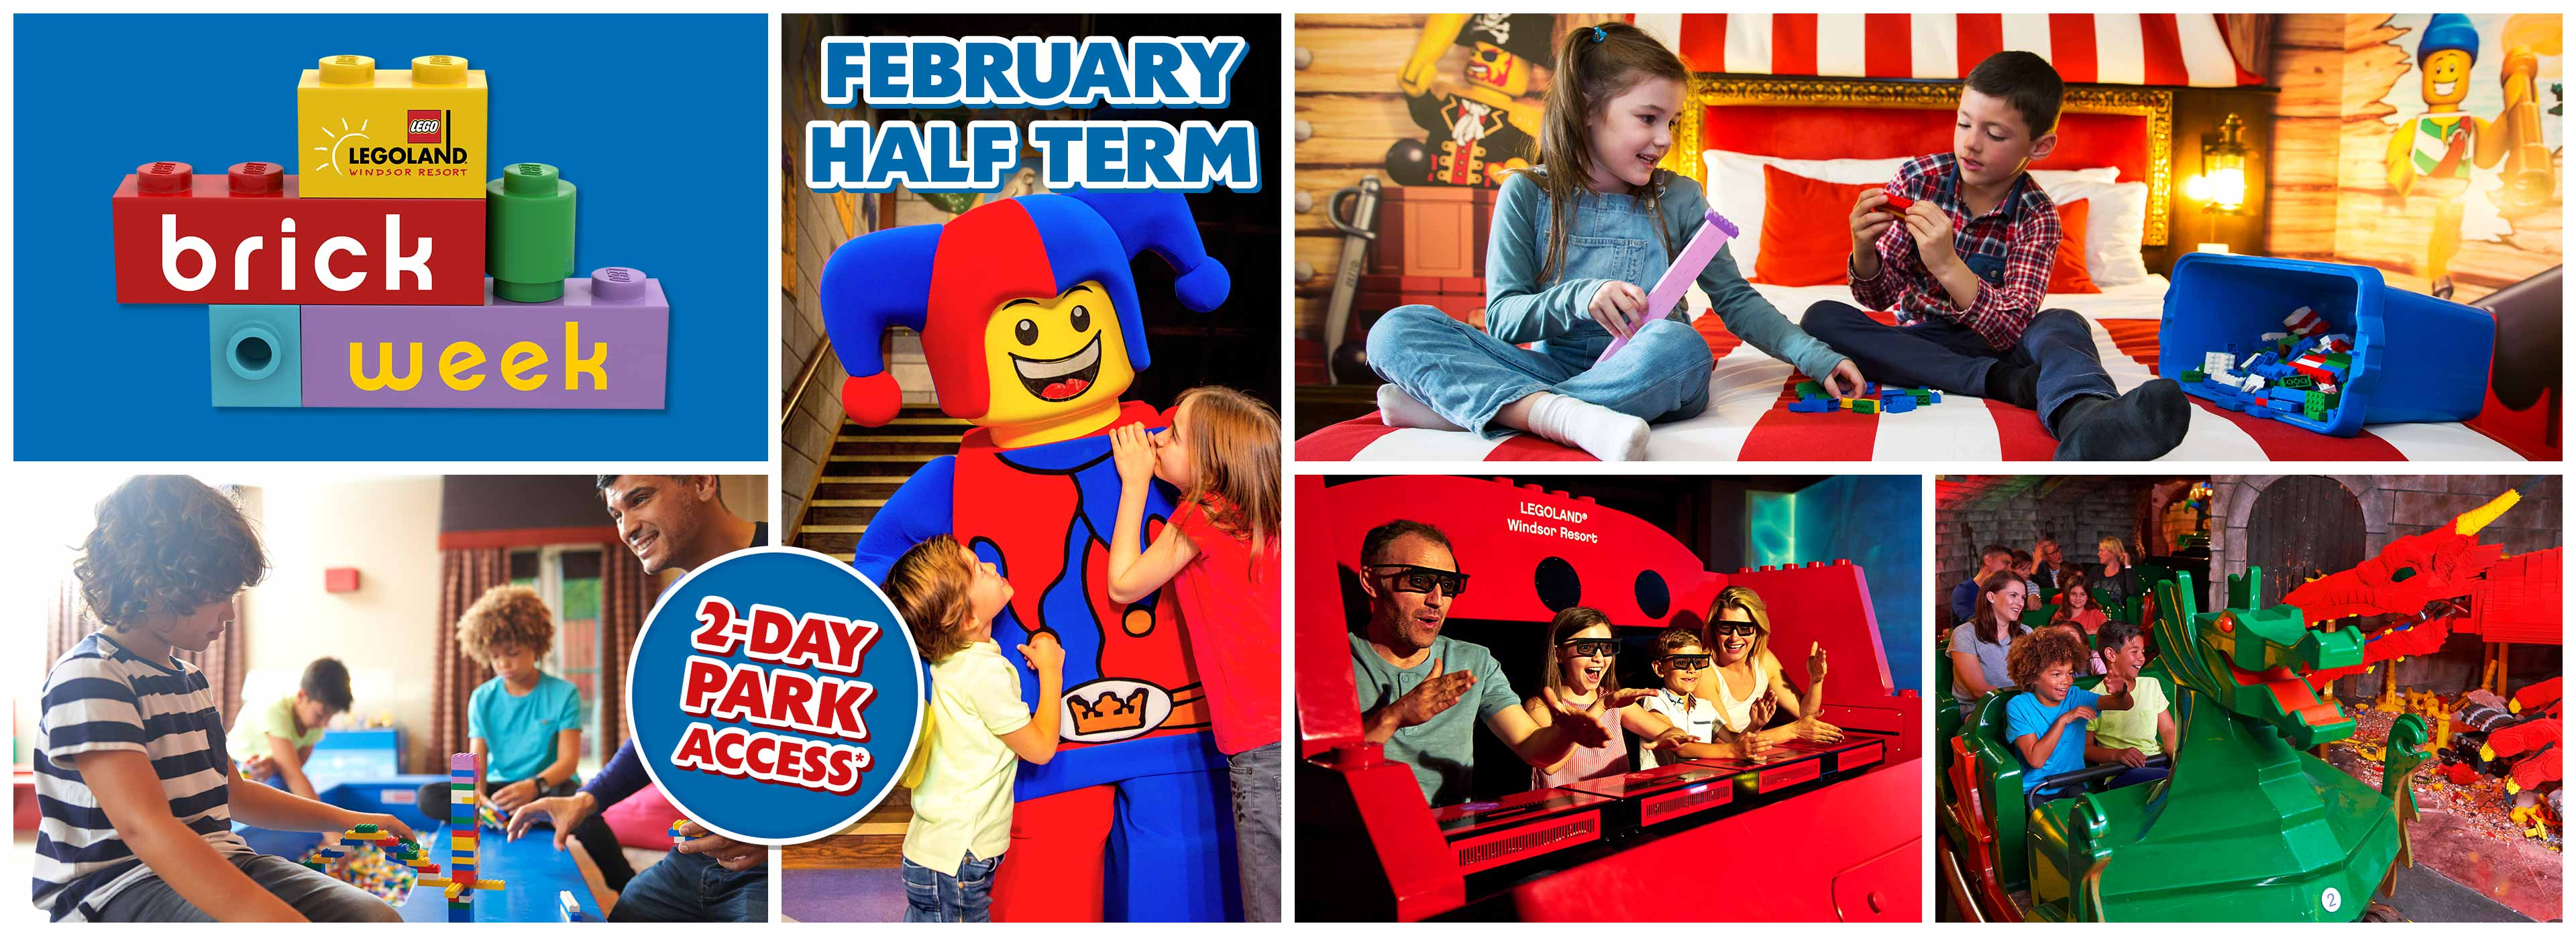 Feb Half Term with LEGOLAND Holidays